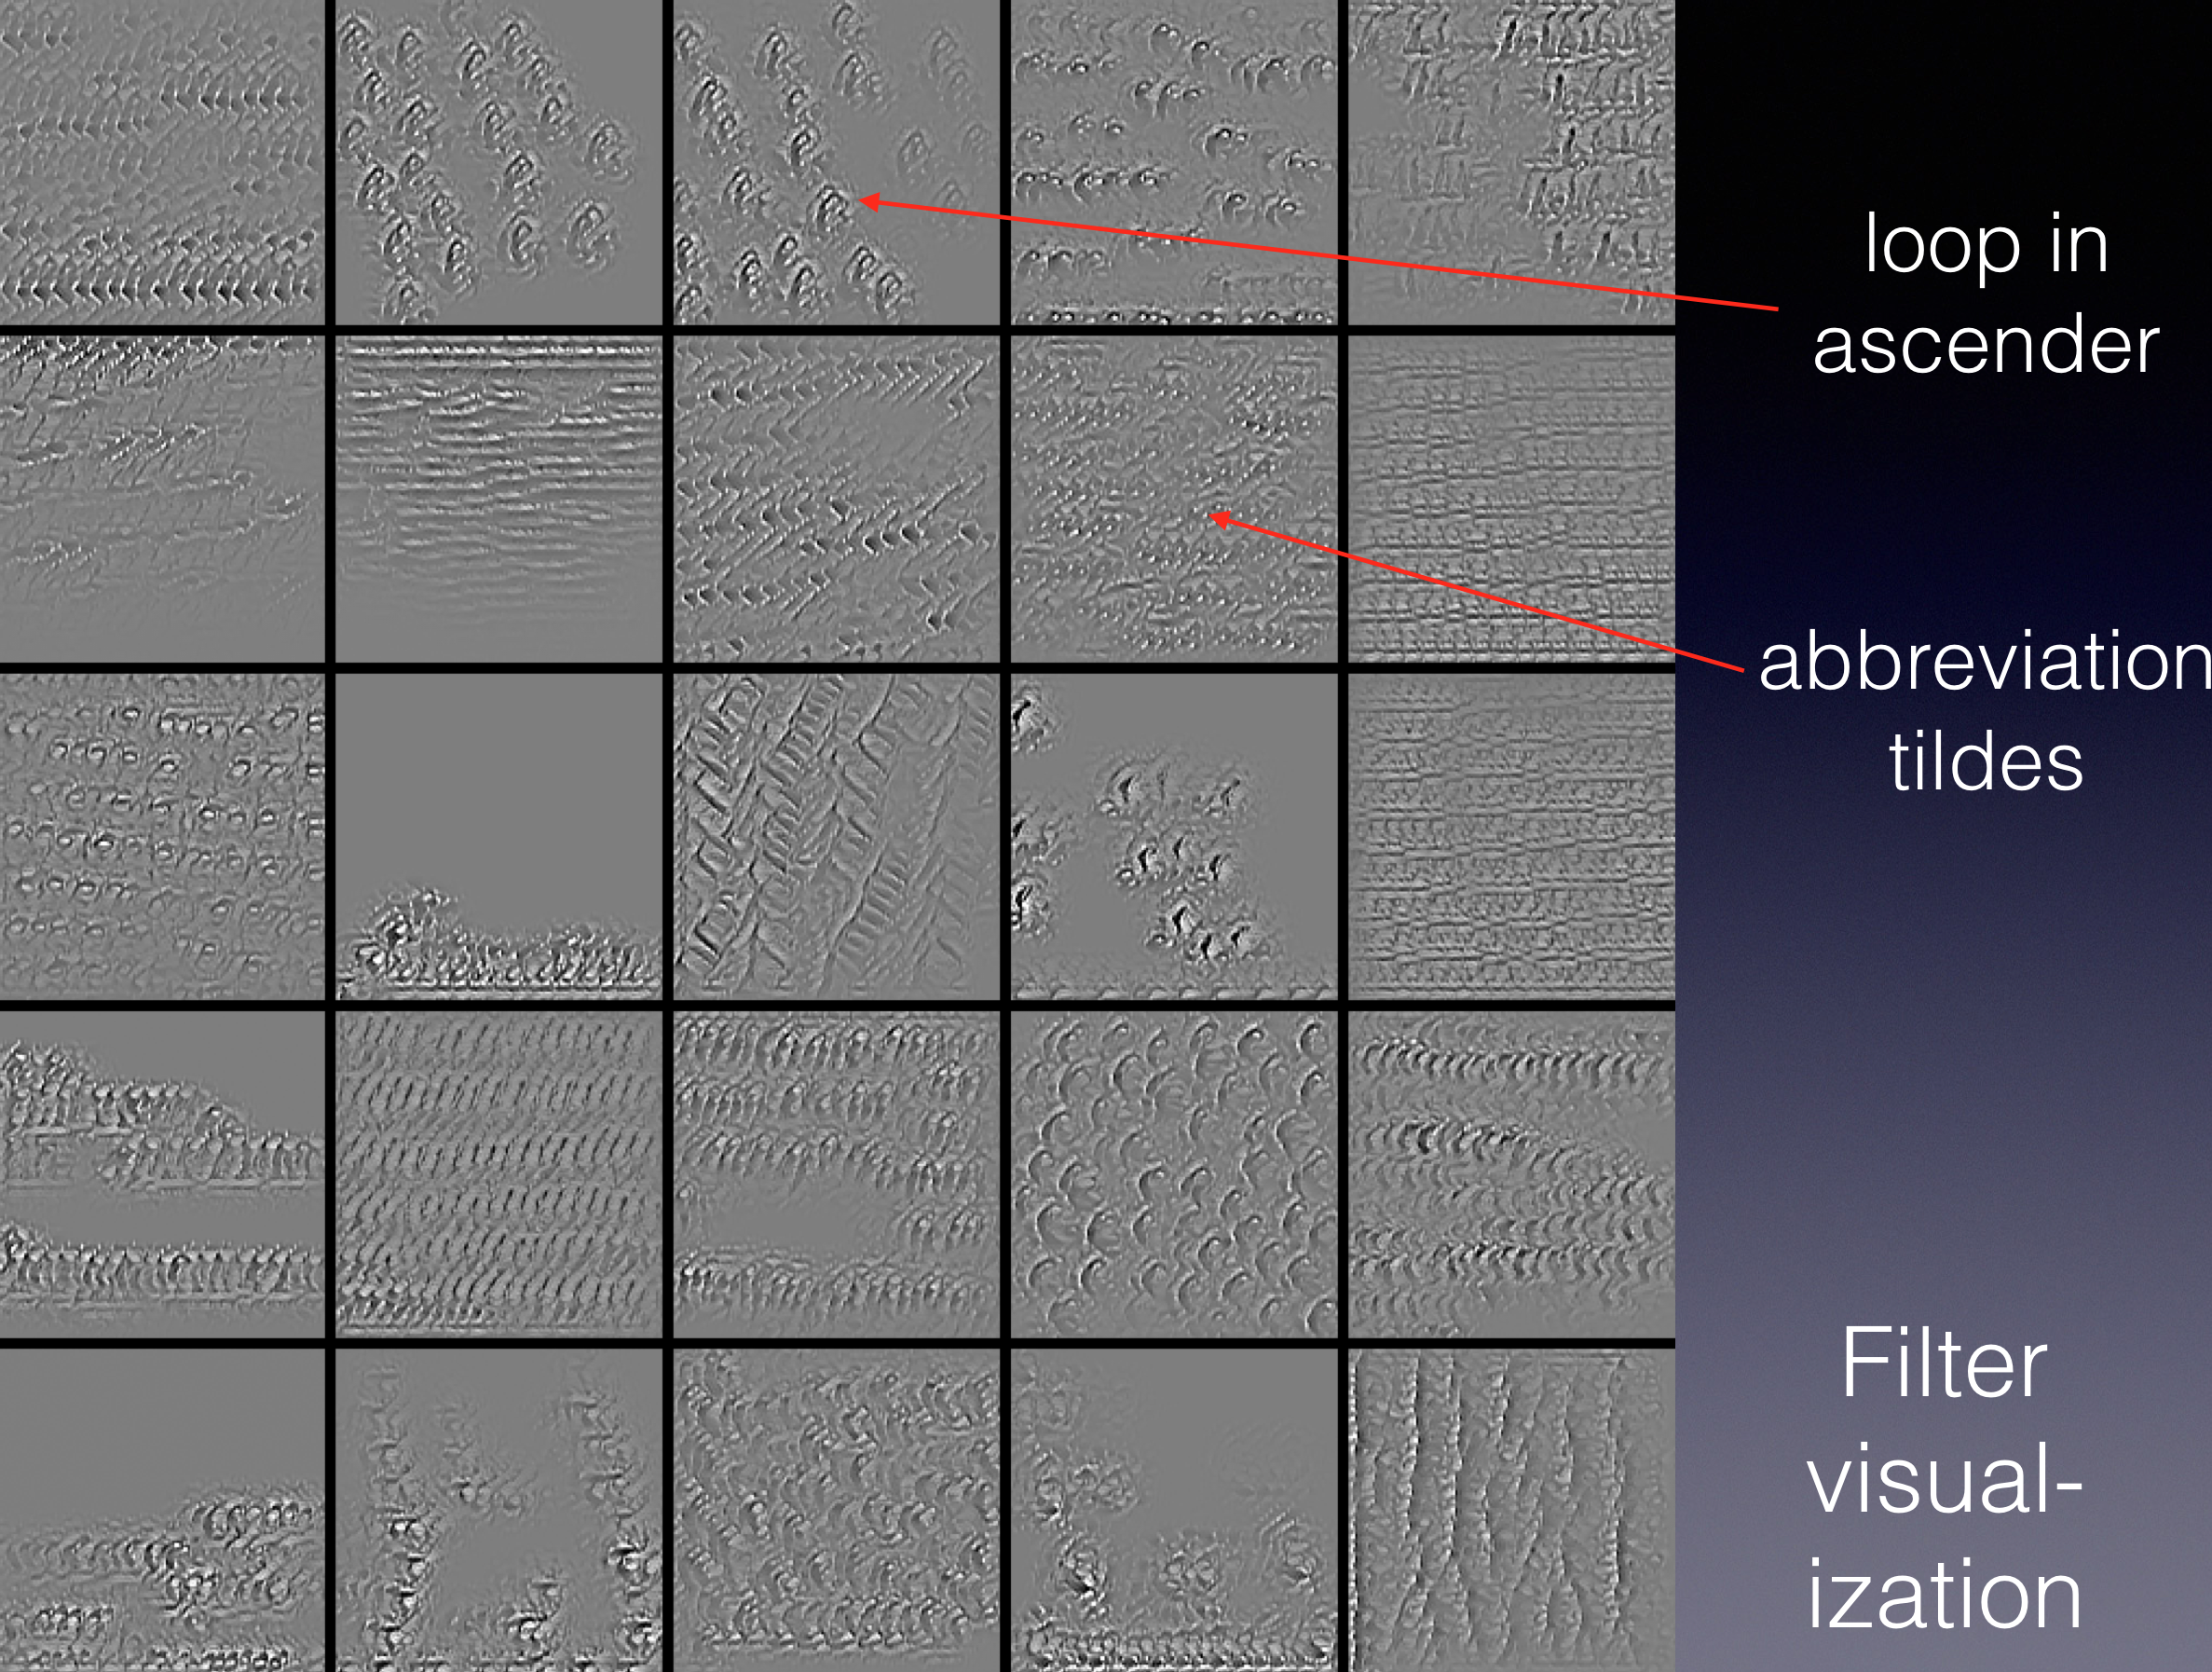 Visualization of filter activations